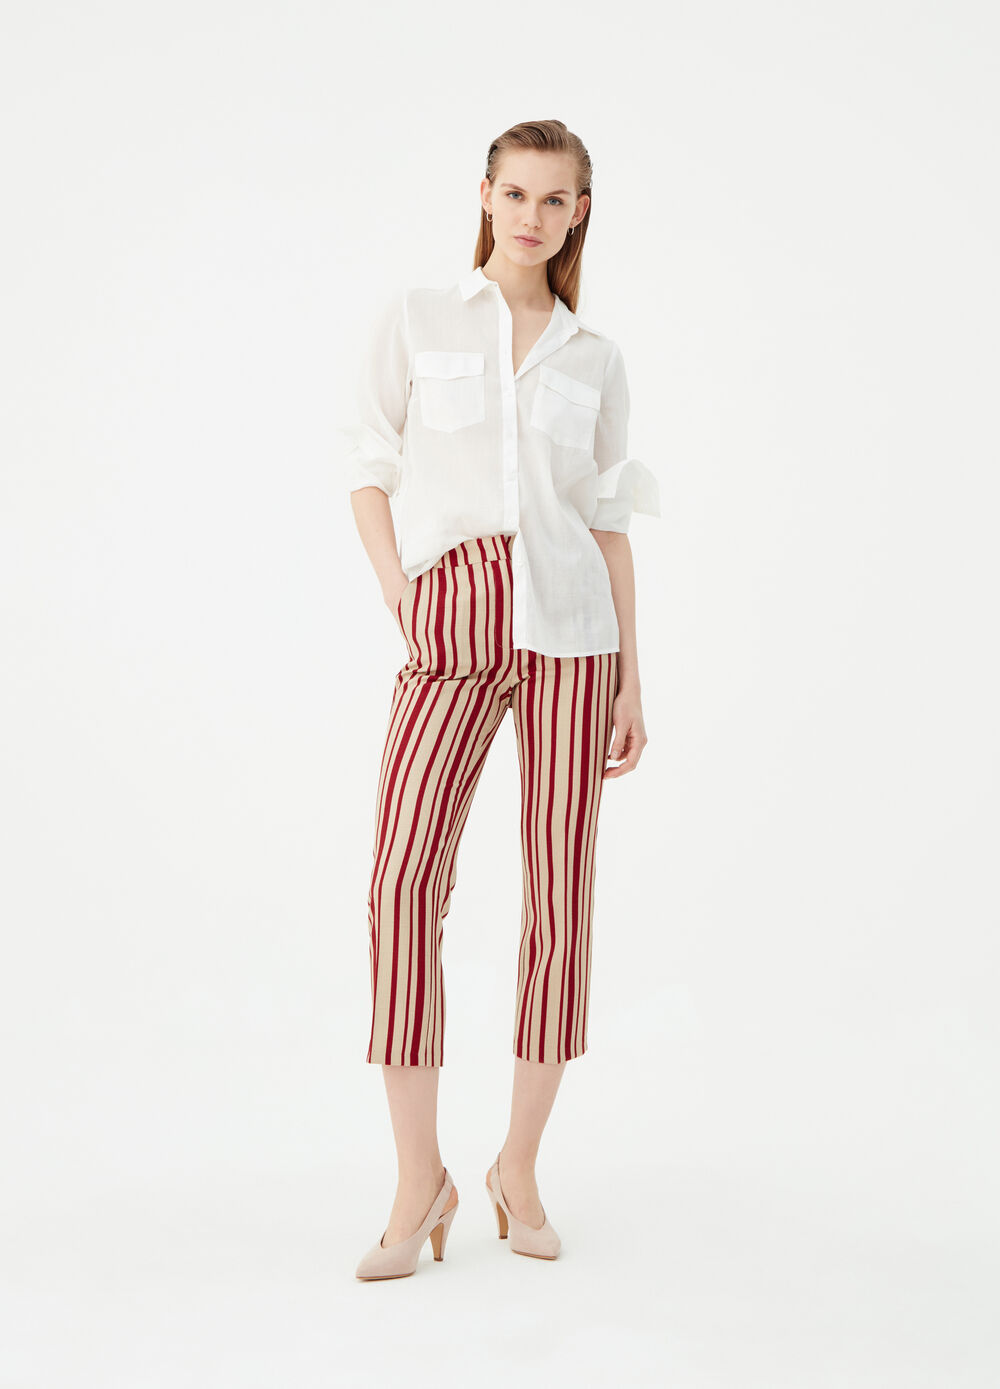 Pantaloni crop fantasia a righe